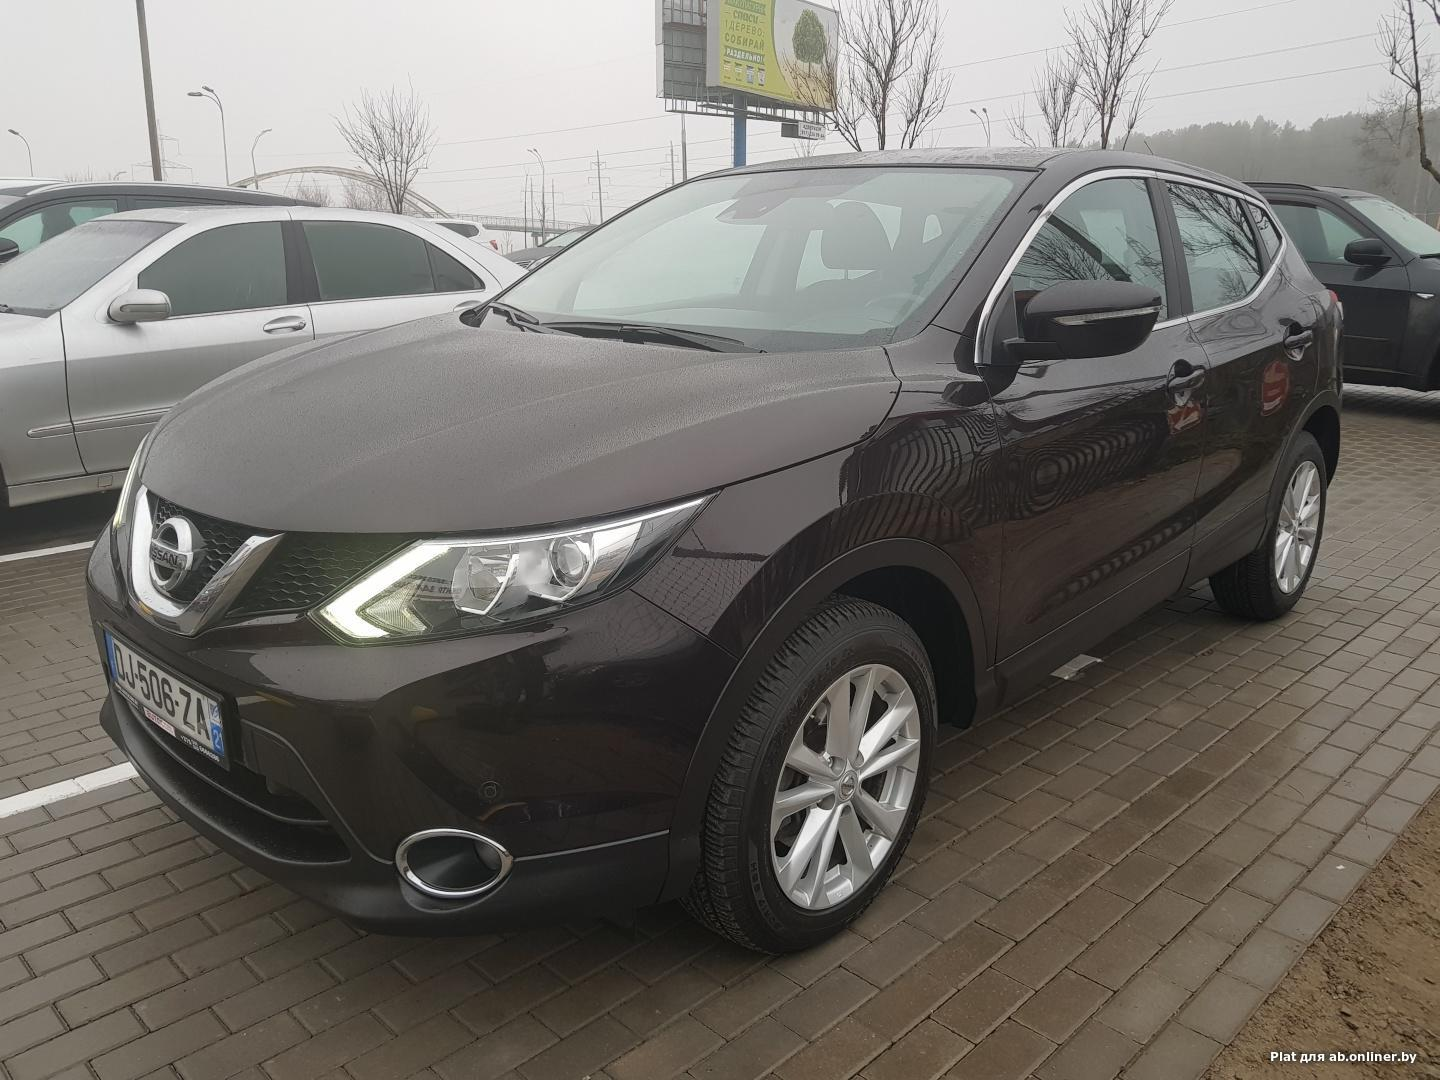 Nissan Qashqai 1.5 DCI 110pk Business Edition